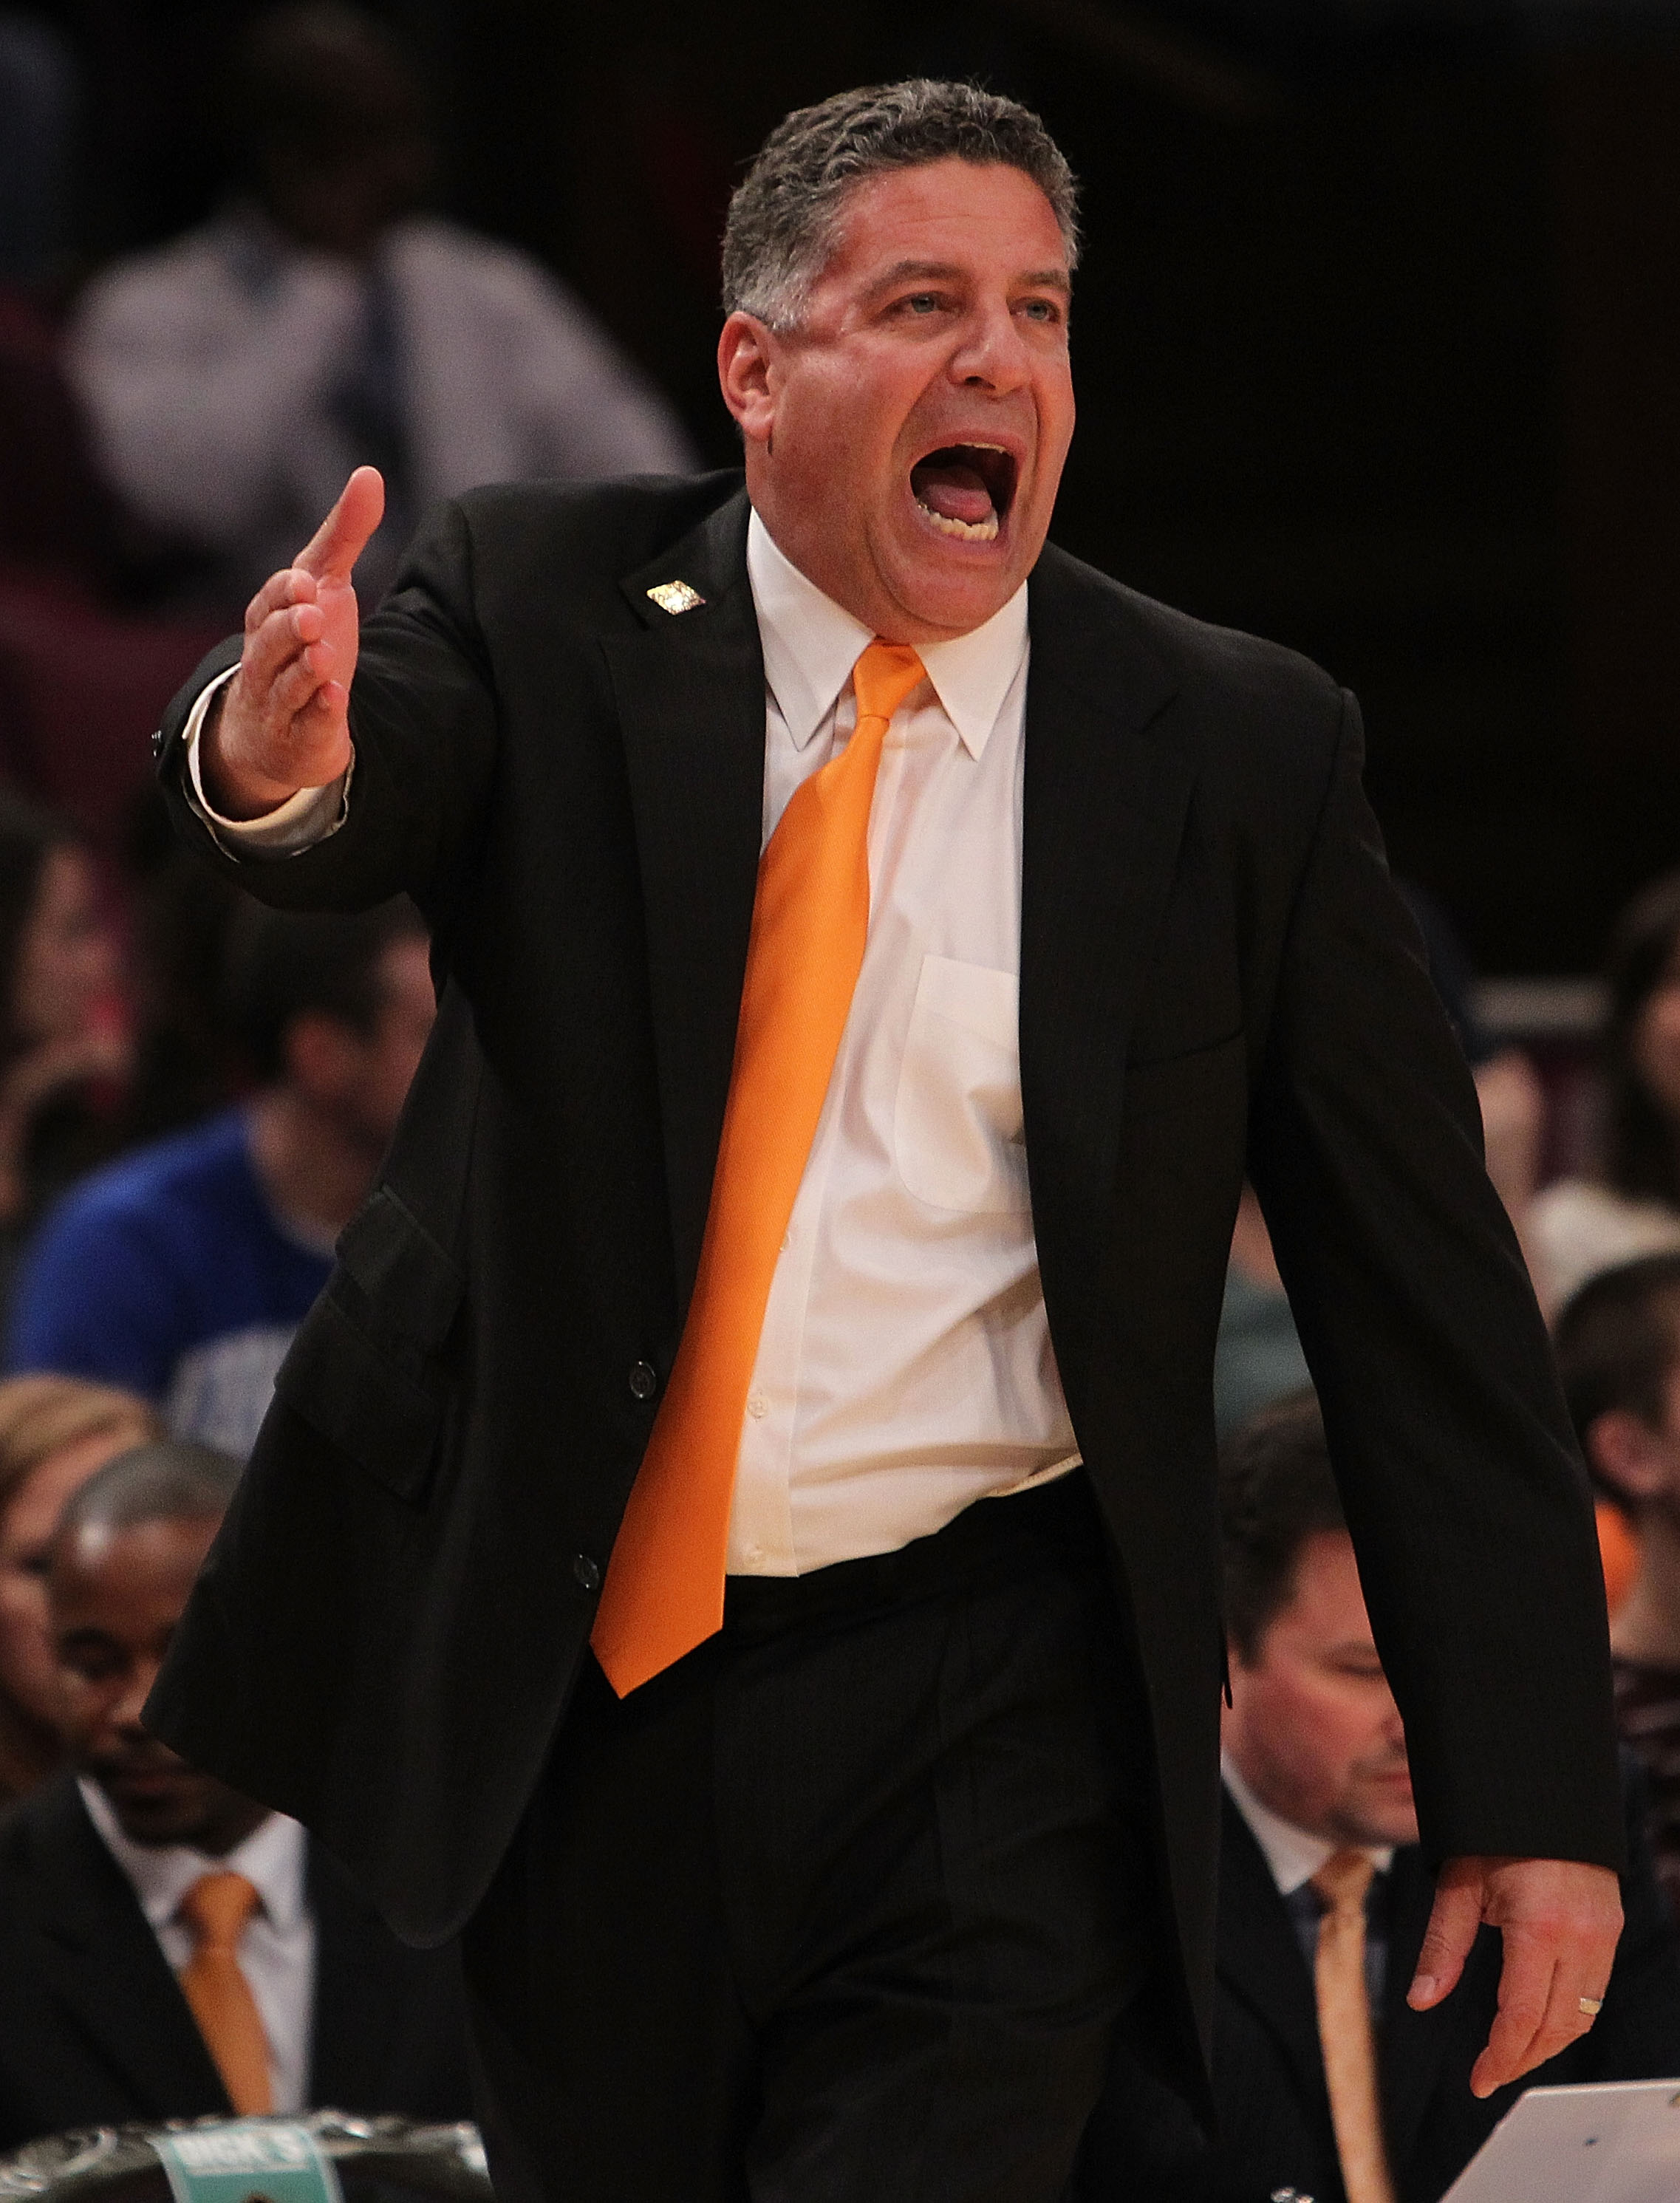 NEW YORK - NOVEMBER 24:  Head coach of the Tennessee Volunteers, Bruce Pearl looks on from the sideline against the Virginia Commonwealth Rams during their preseason NIT semifinal at Madison Square Garden on November 24, 2010 in New York City.  (Photo by